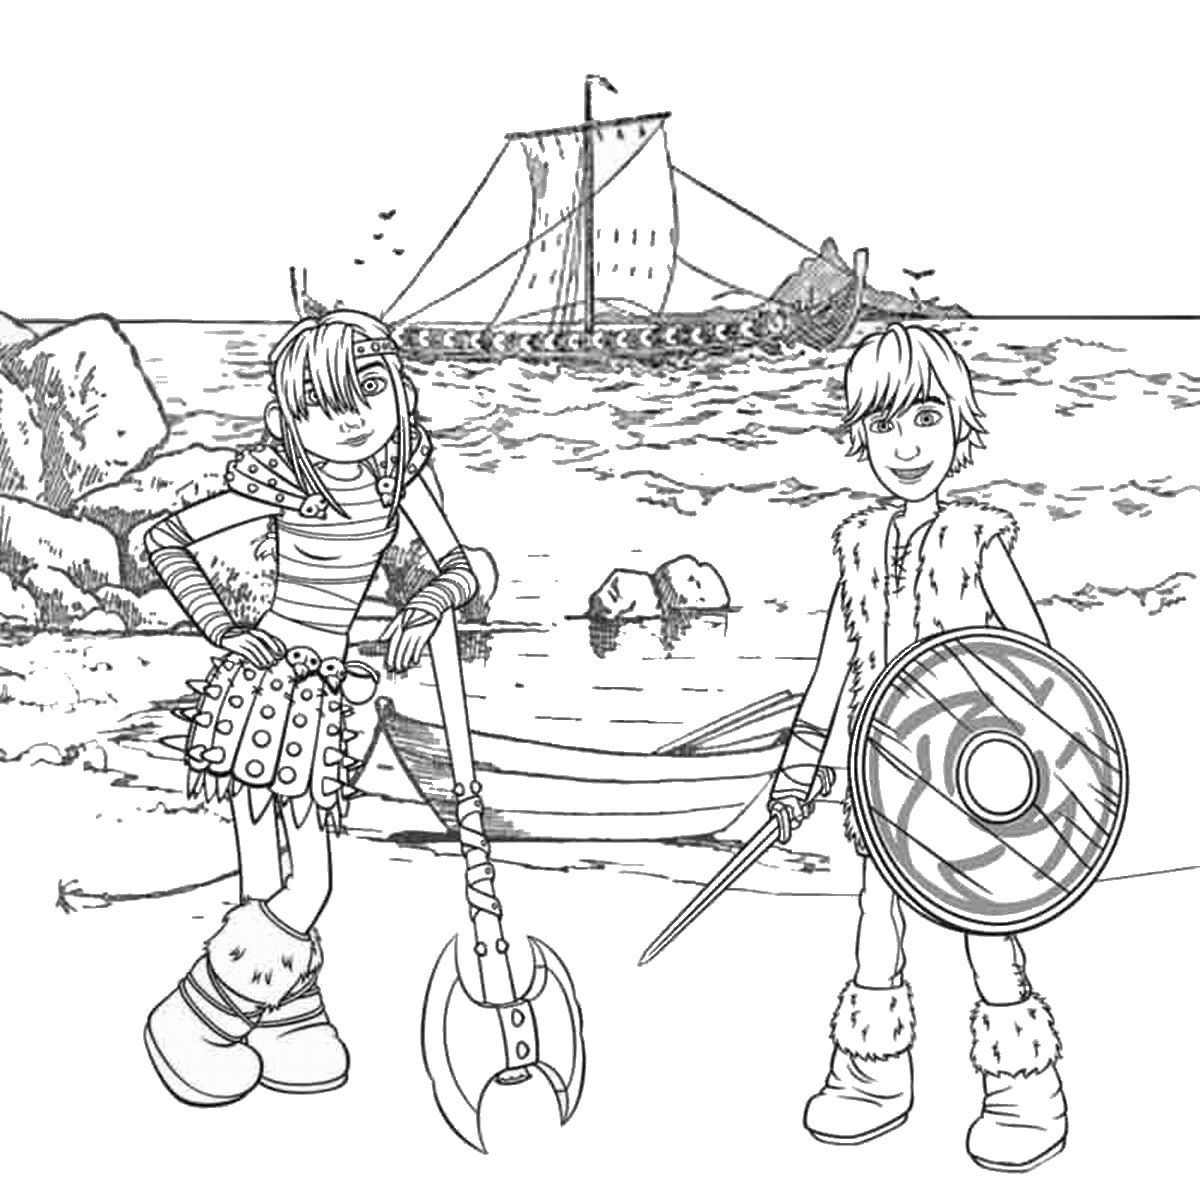 how to train your dragon coloring pages online train your dragon coloring pages coloring home train dragon pages coloring to your online how